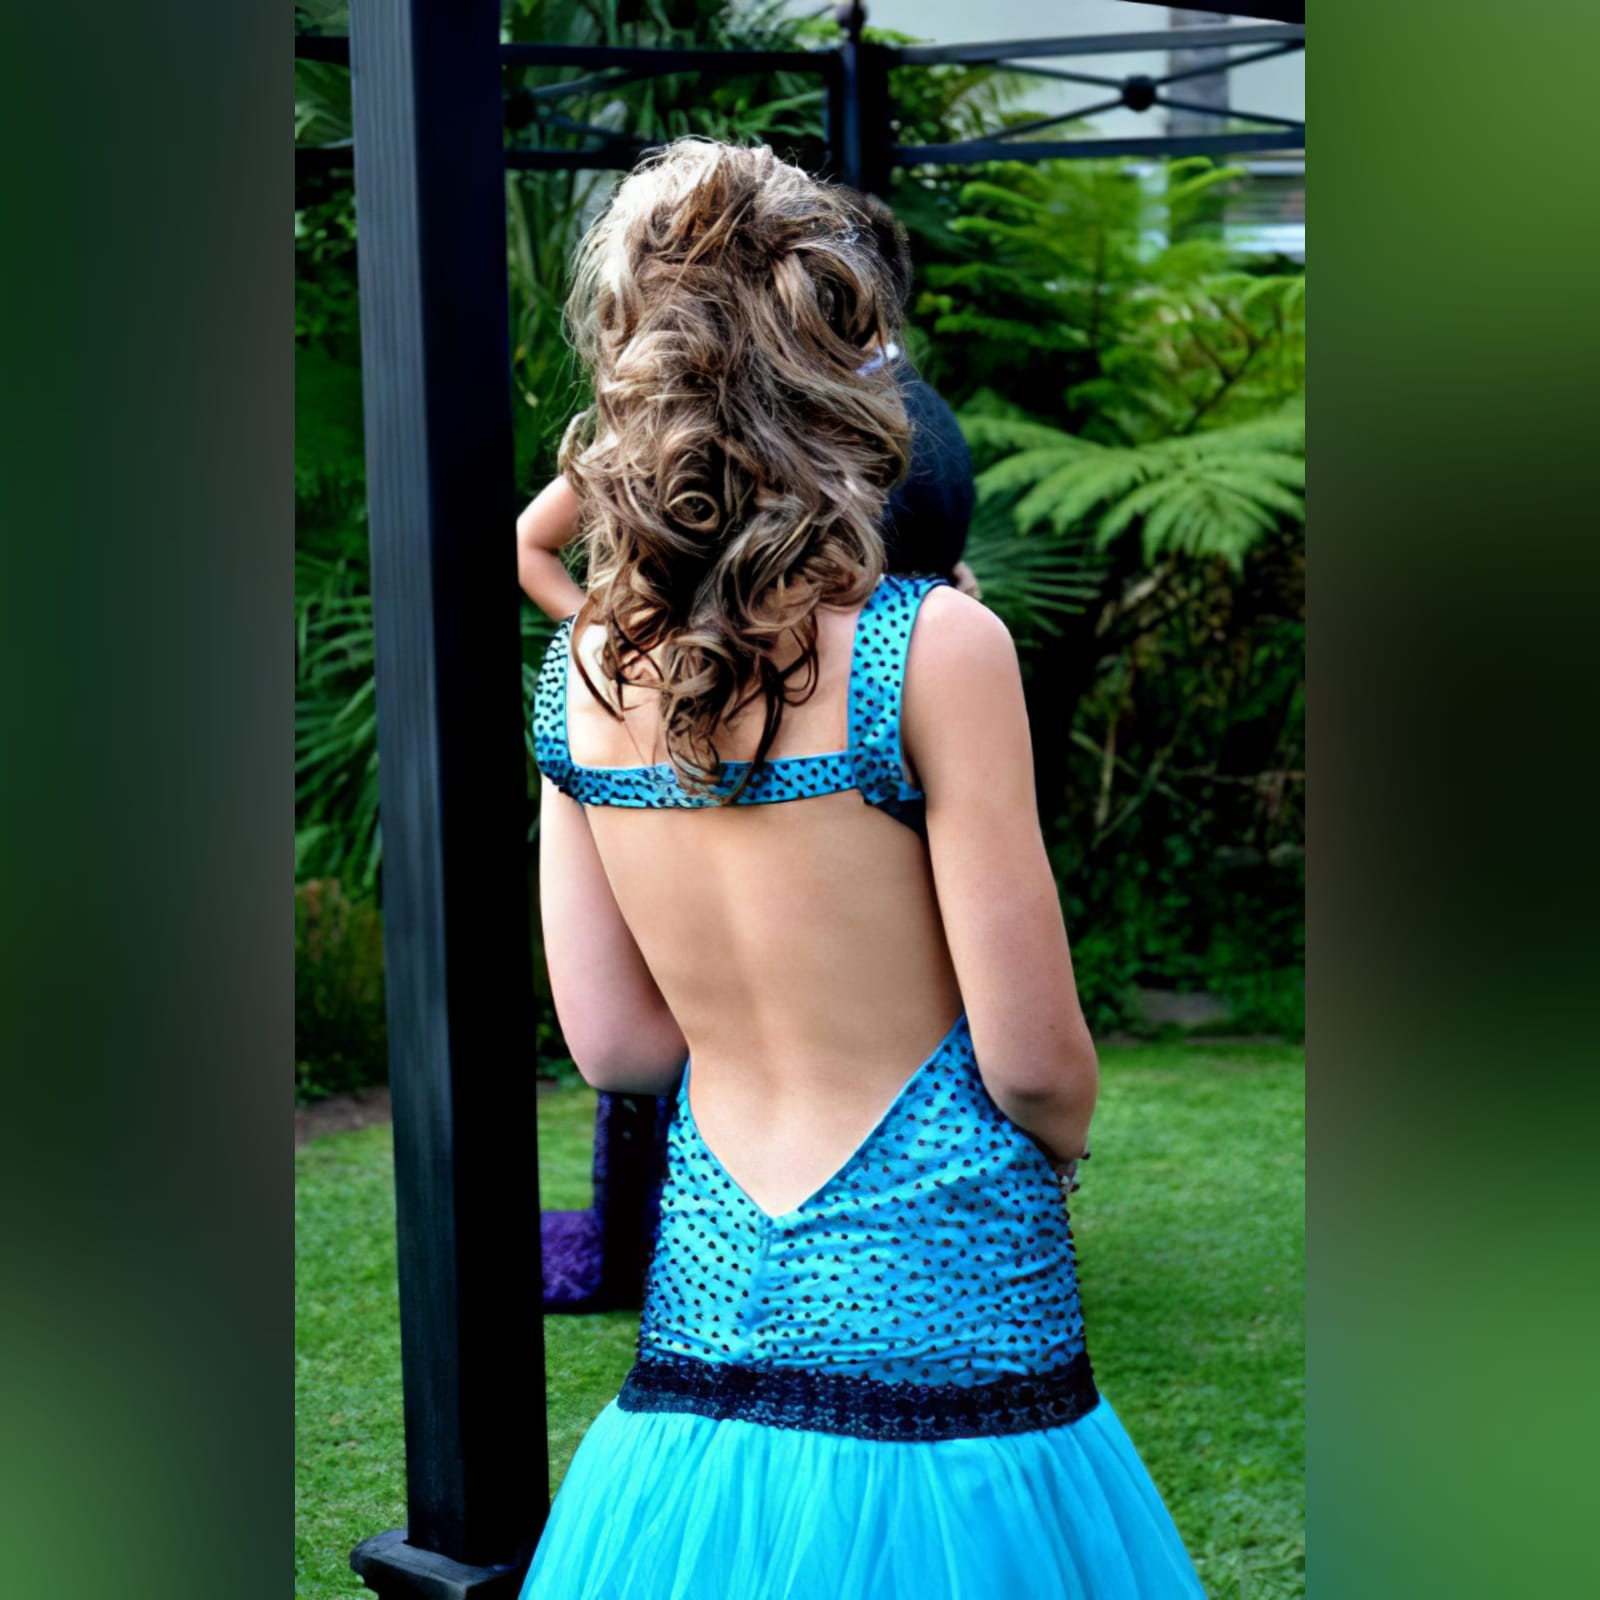 Turquoise blue and black matric farewell dress 3 turquoise blue and black matric farewell dress with a scattered beaded bodice with a low open back and a tulle bottom.